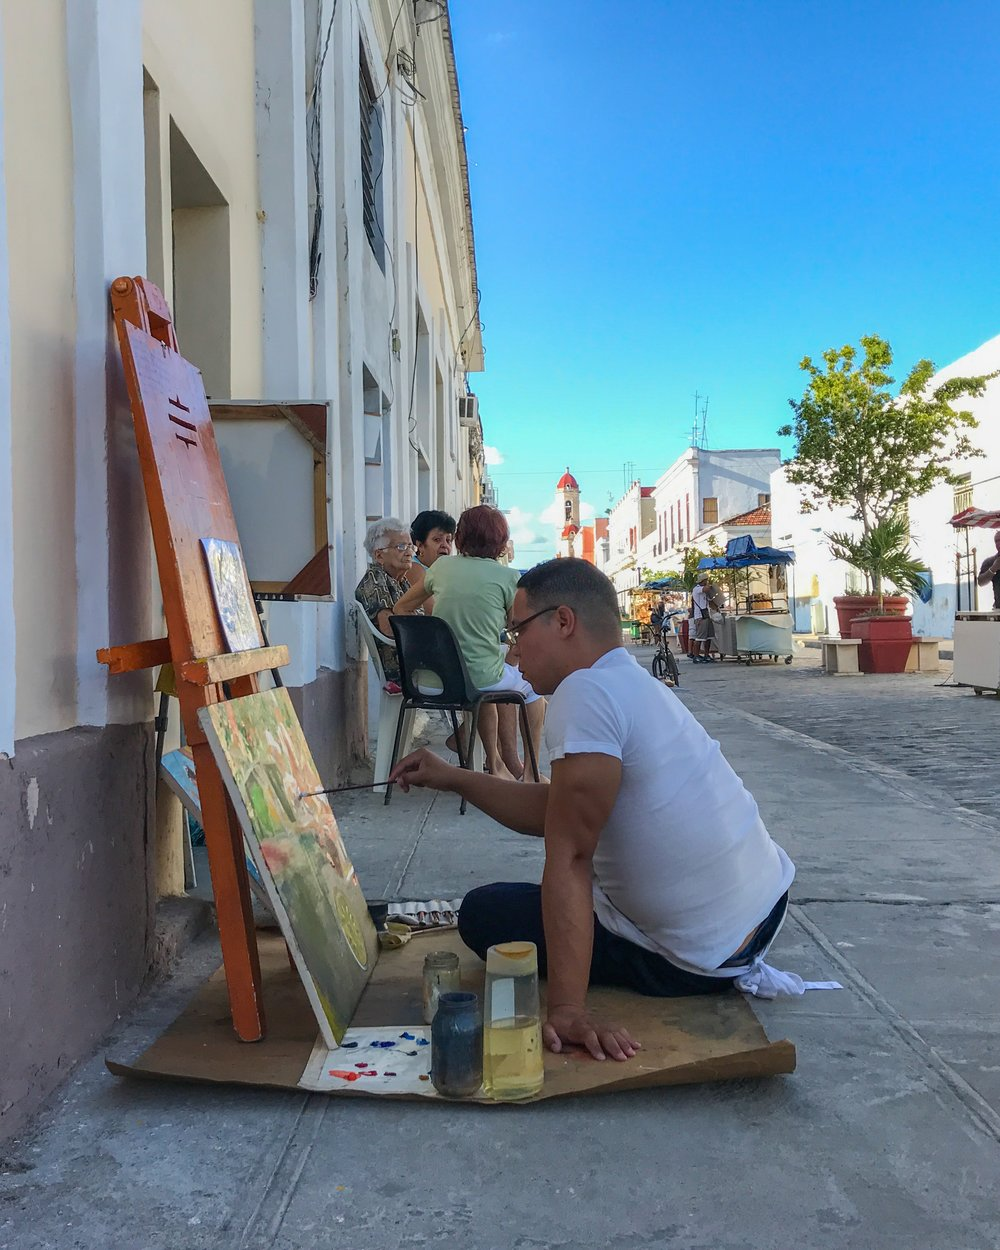 An artist painting on the street in Cienfuegos before giving us a tour of his gallery